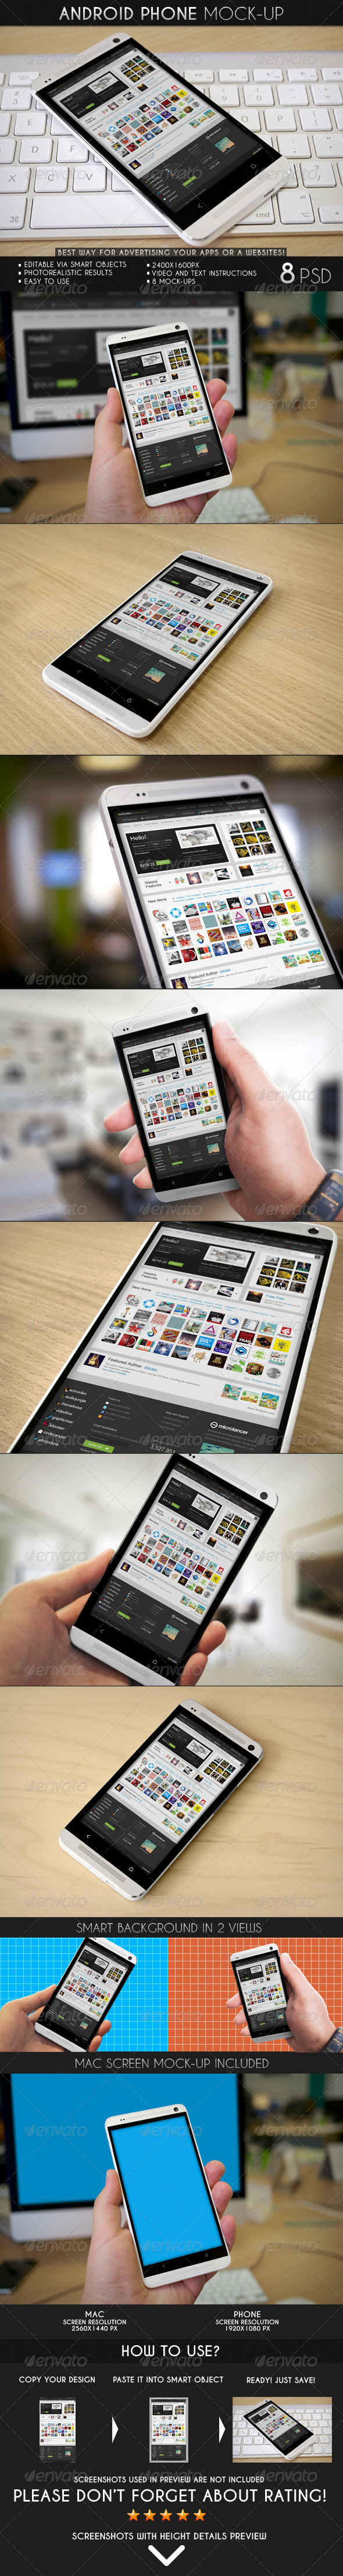 Android Phone Mock-Up - Mobile Displays